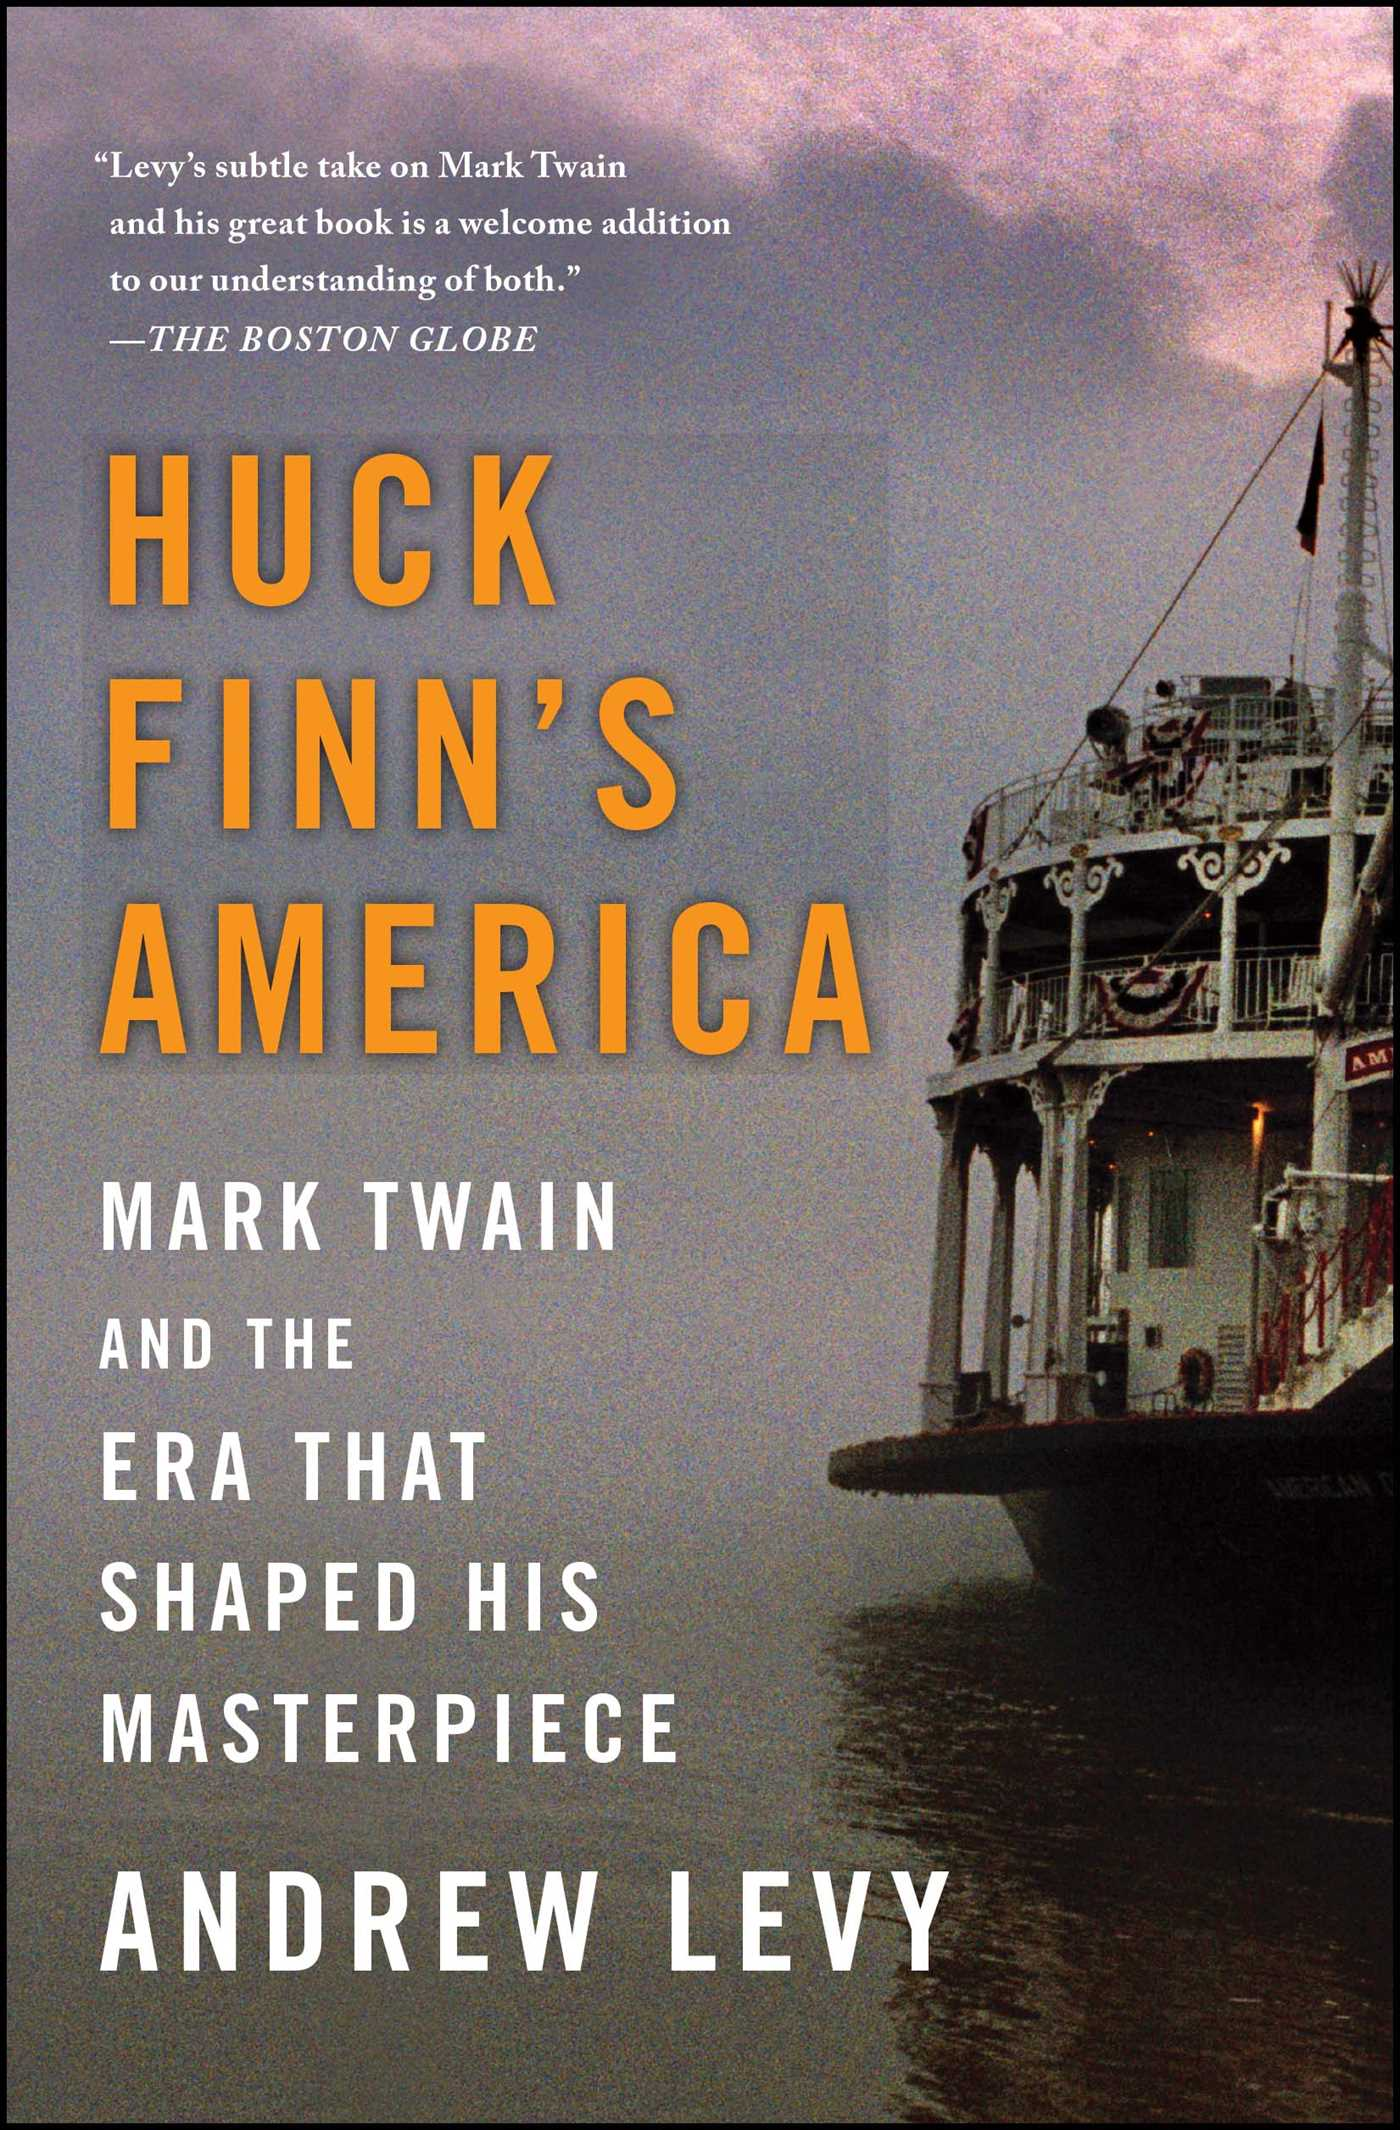 Huck Finn's America eBook by Andrew Levy | Official ...